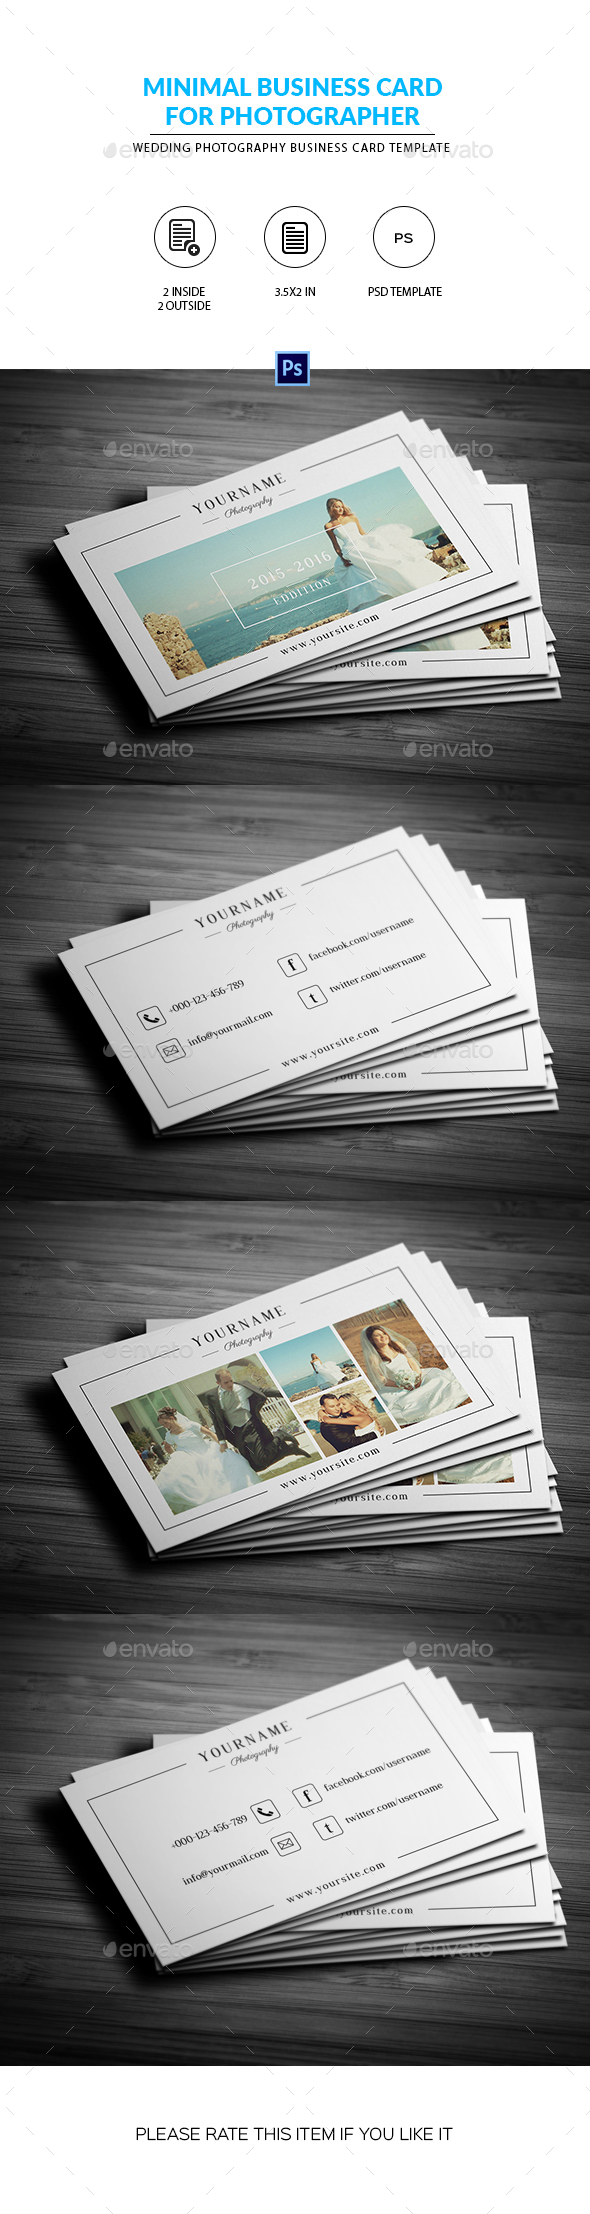 Minimal wedding photography business card by smmrdesign graphicriver minimal wedding photography business card corporate business cards reheart Choice Image